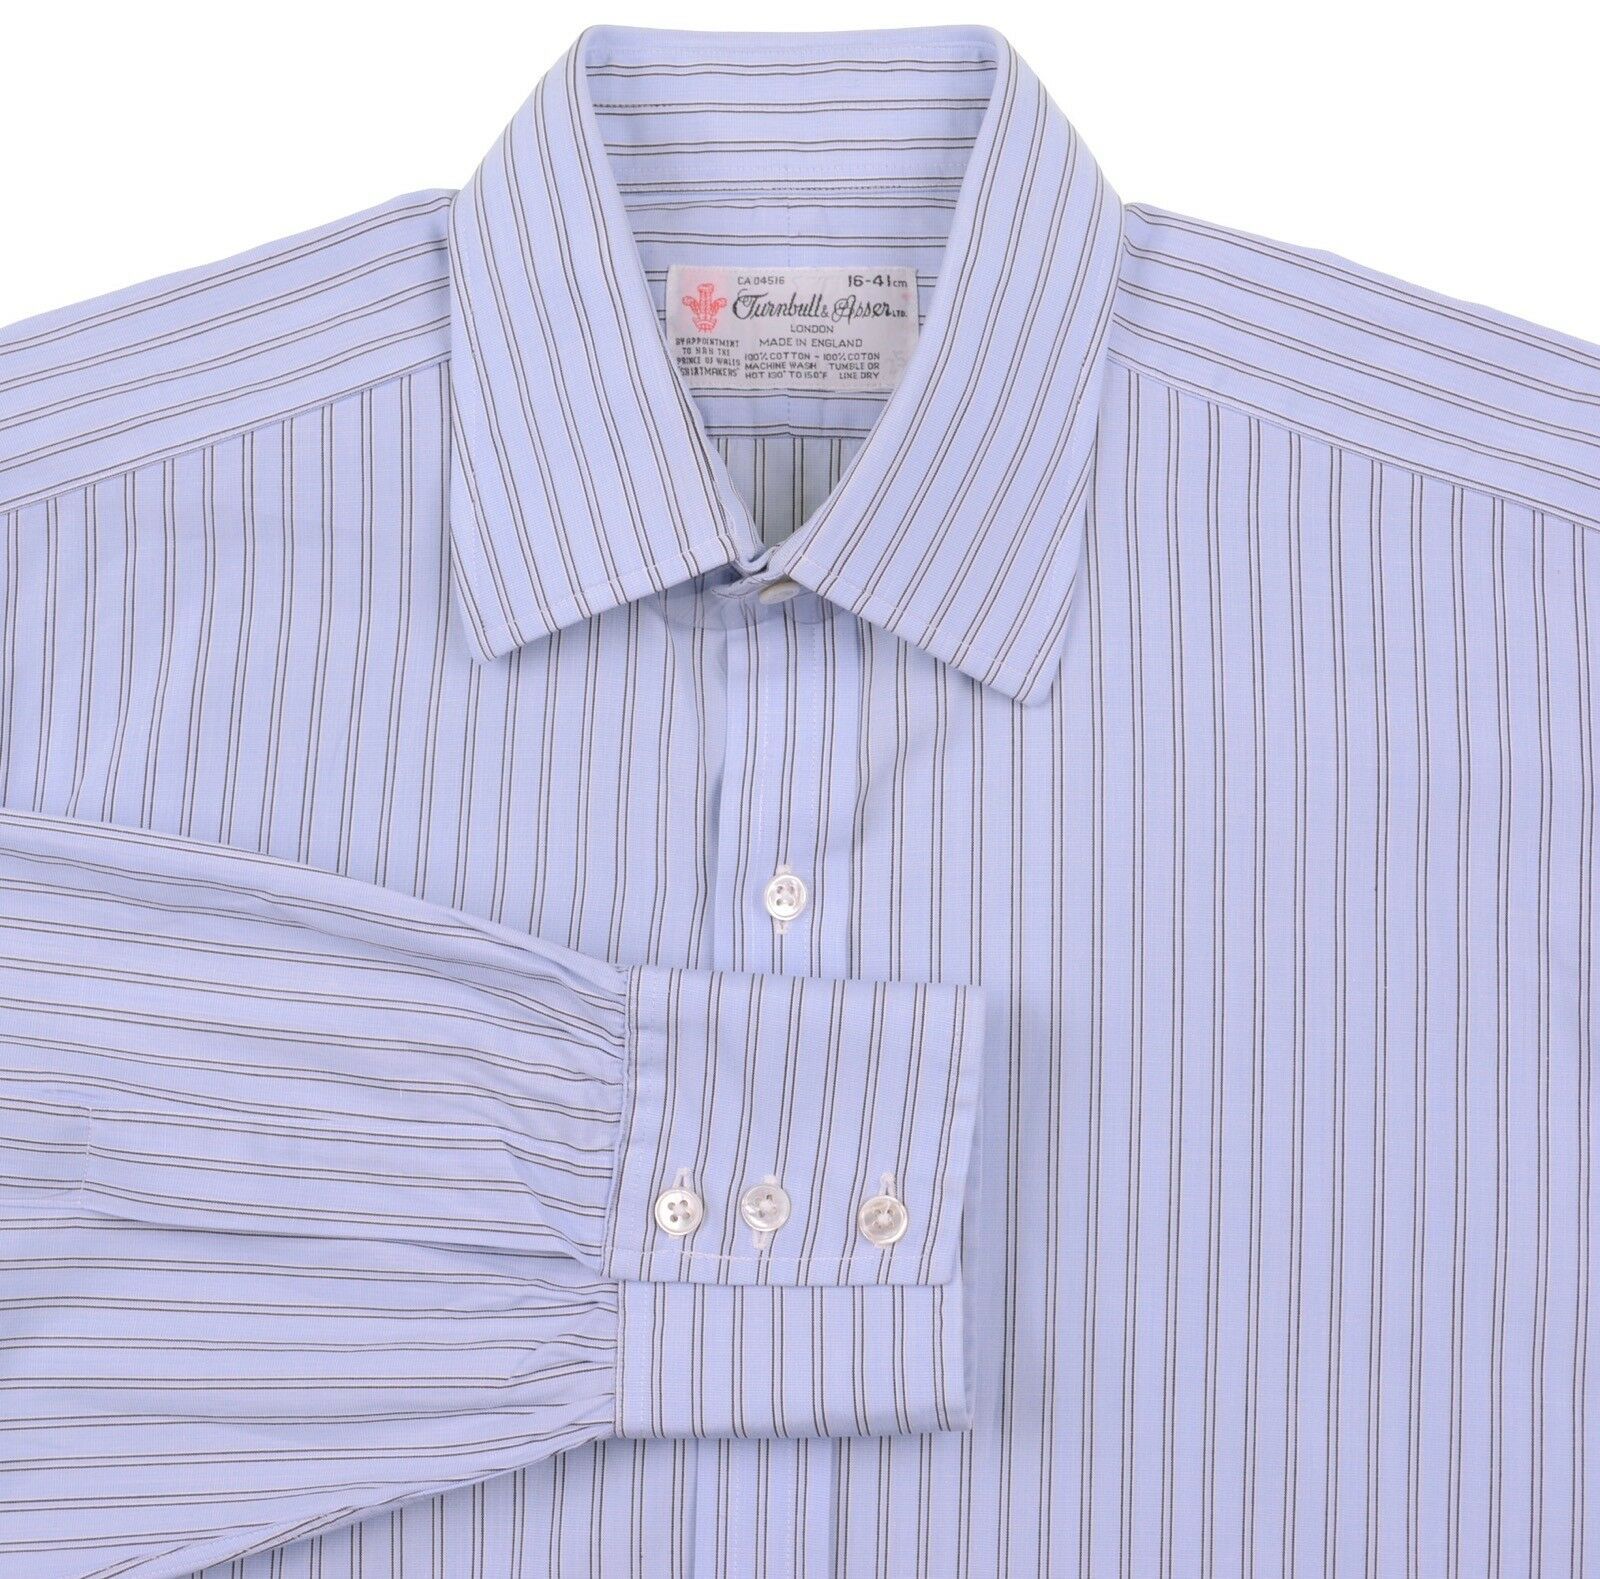 Turnbull & Asser Blau Multi Stripe 100% Cotton Dress Shirt 16